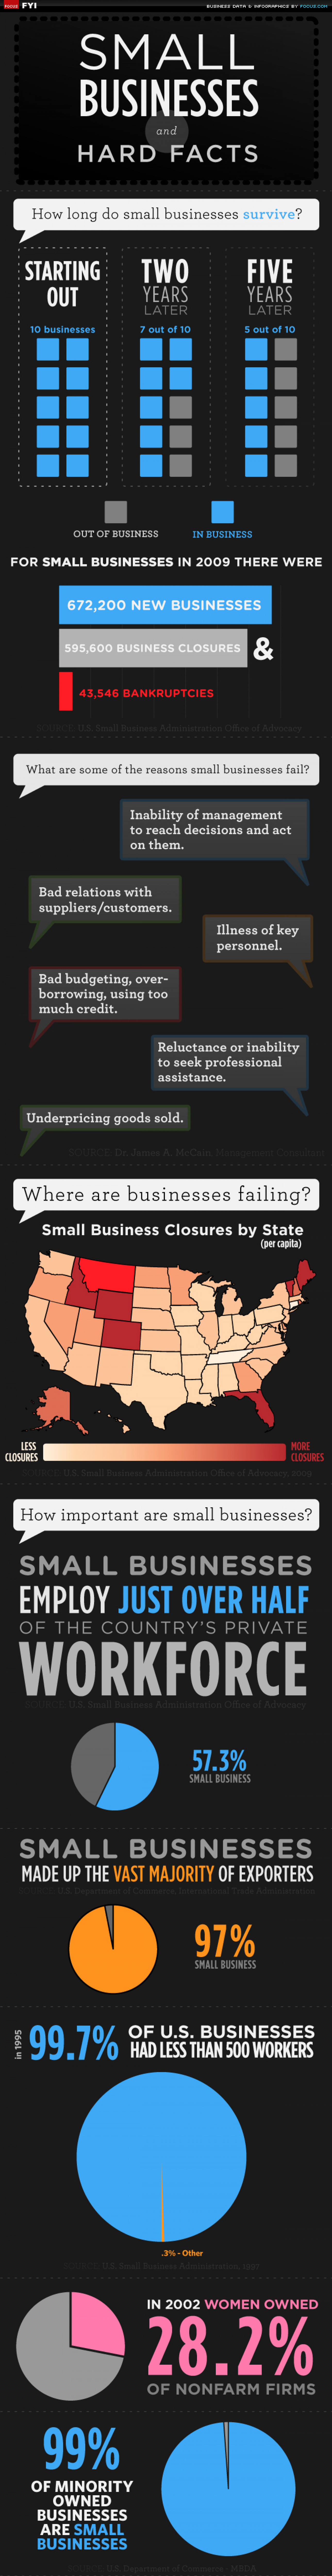 Small Business and Hard Facts Infographic